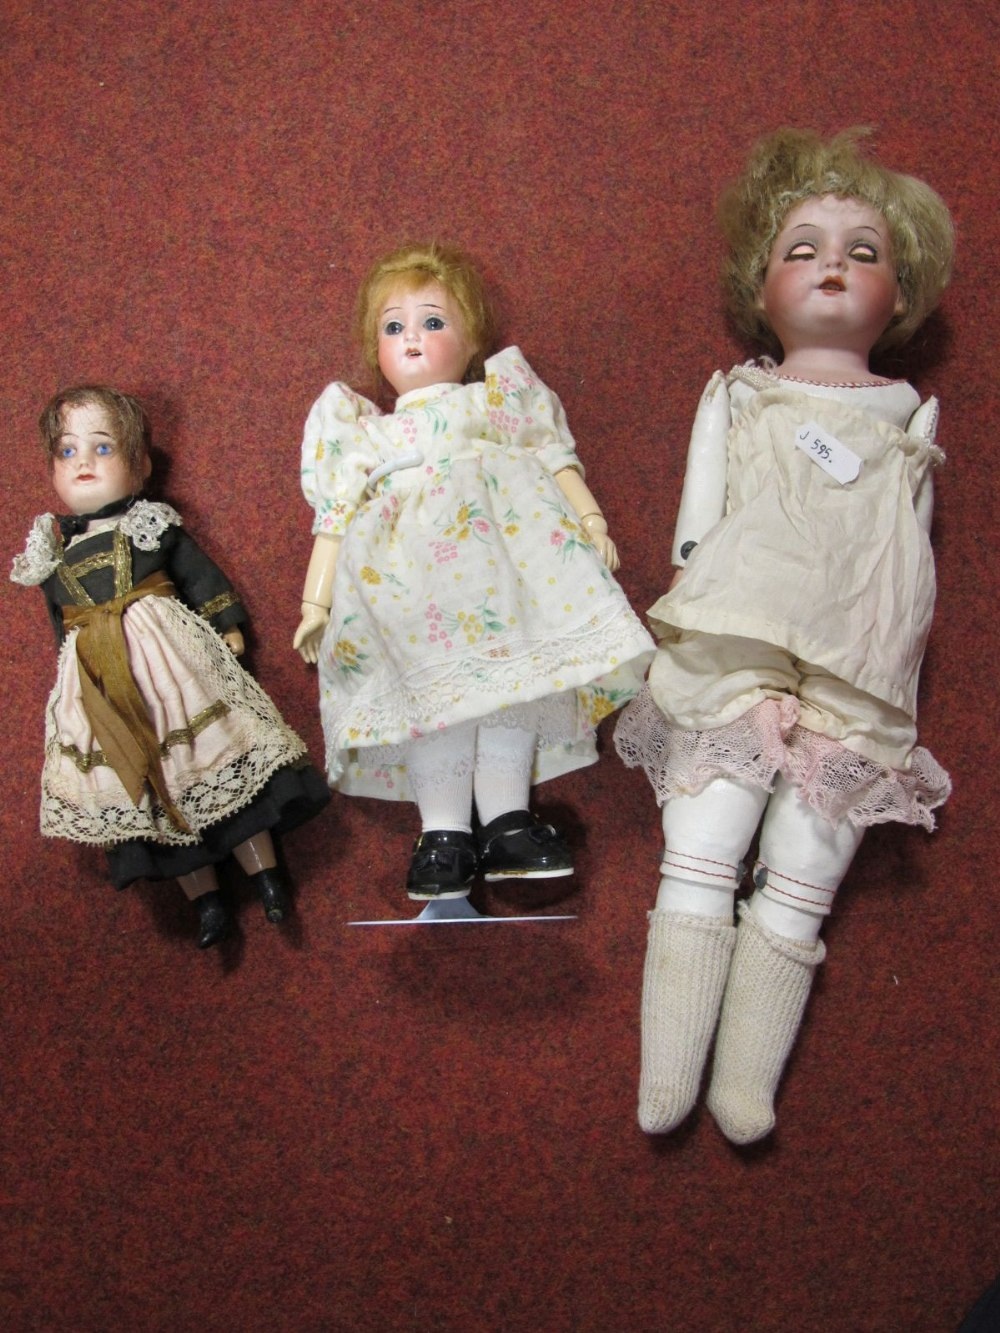 Lot 55 - Three Early XX Century Bisque Headed Dolls, one stamped Germany, 370, 710M. With sleepy eyes, open